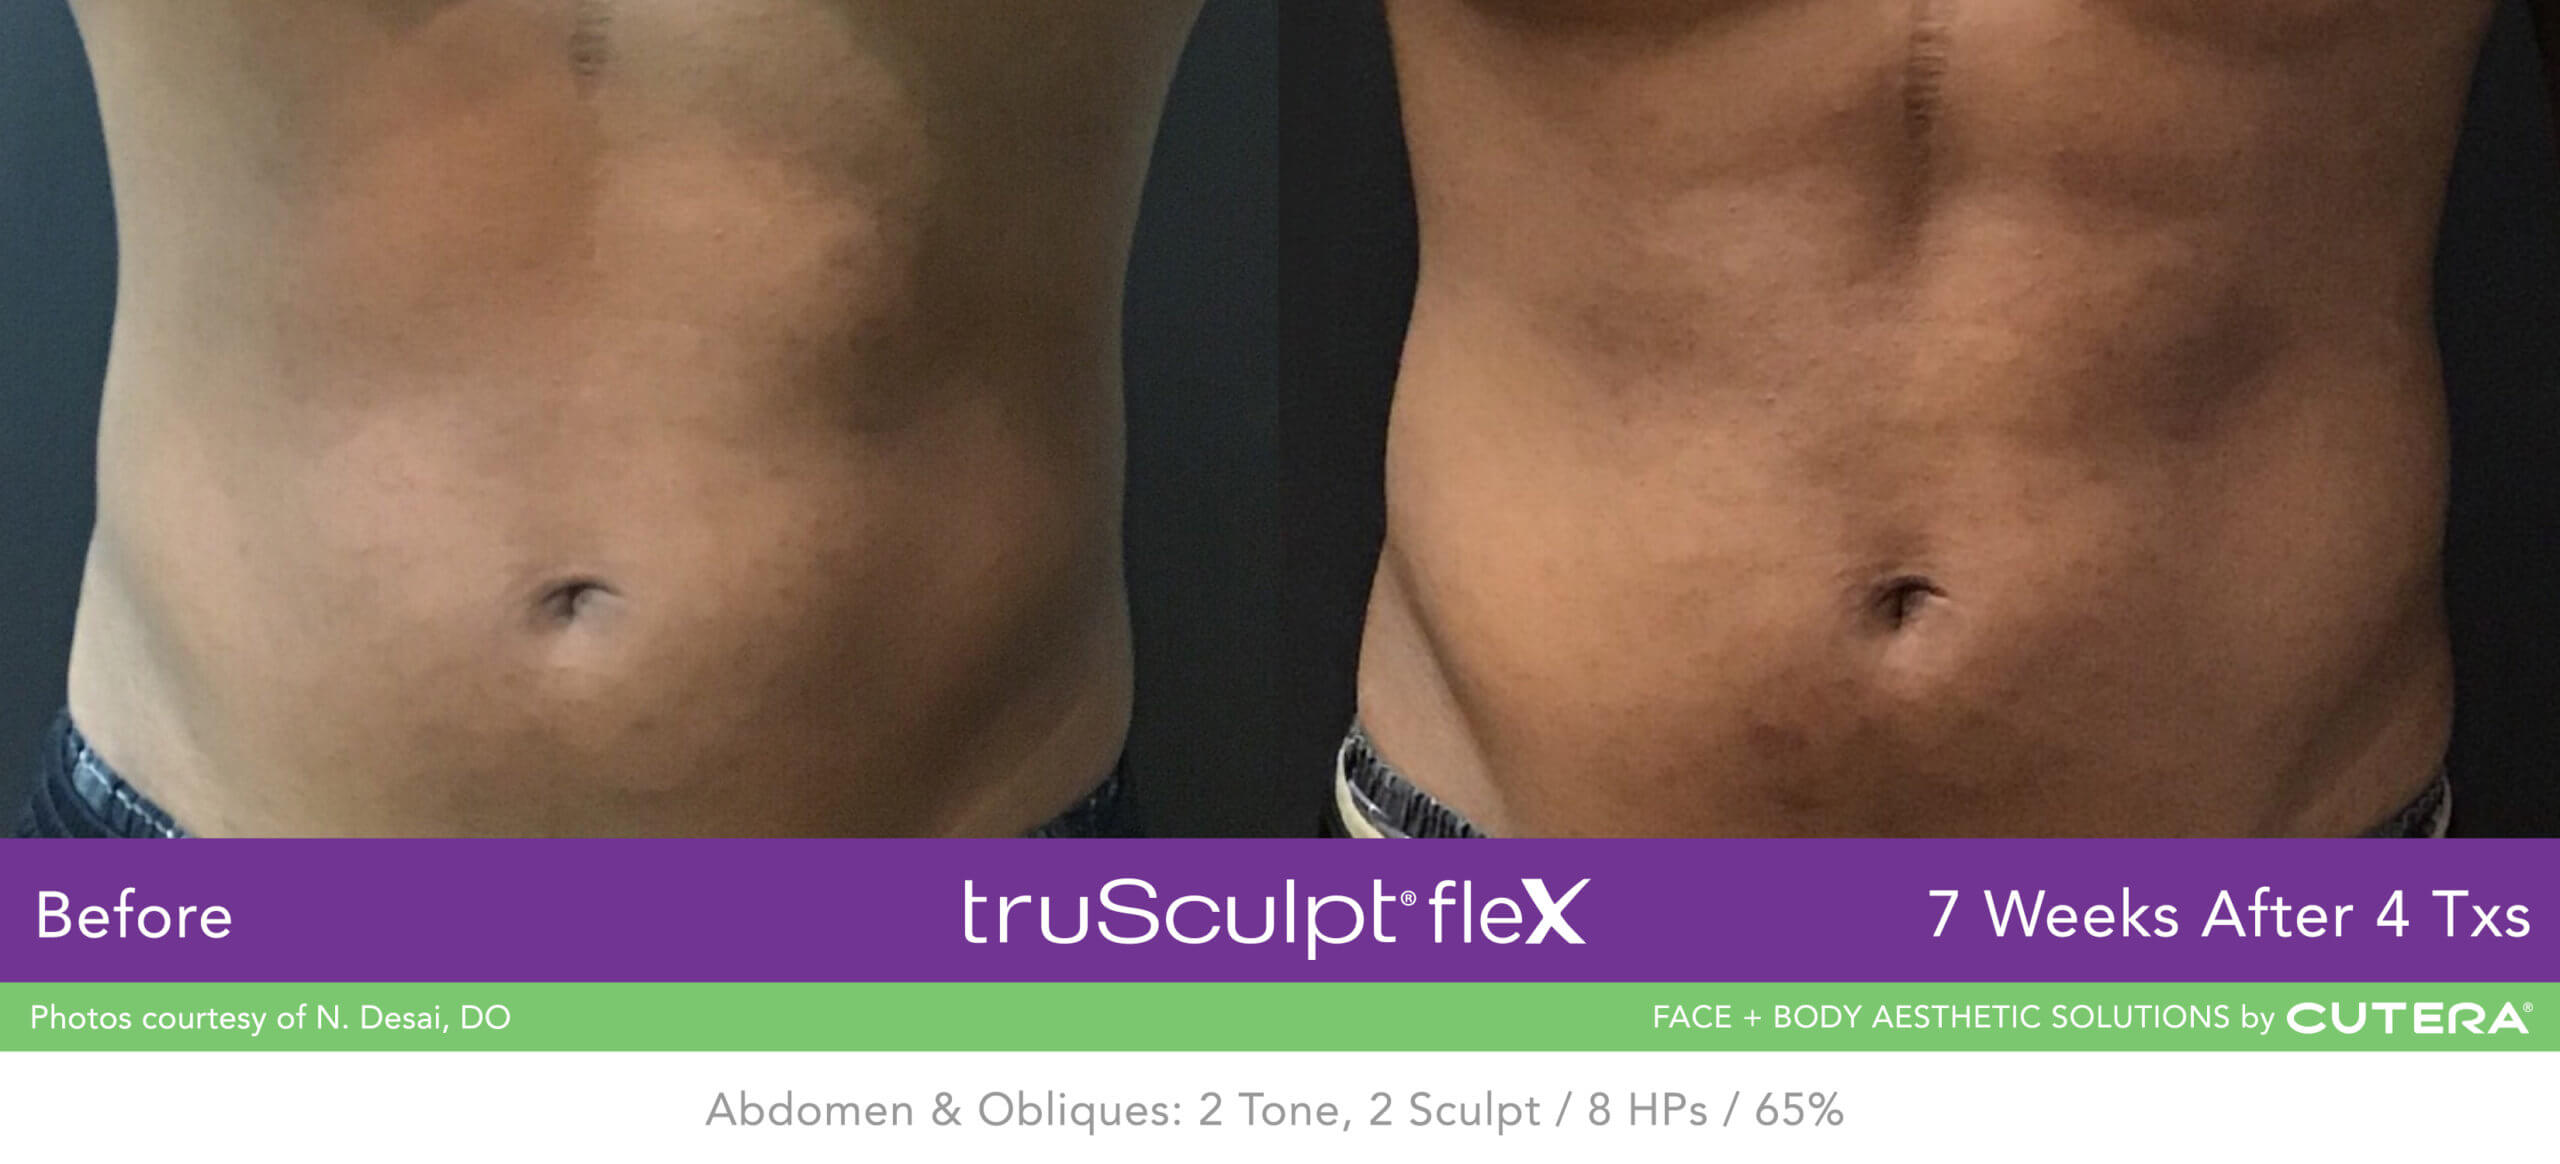 Muscle Sculpting on the abdomen before and after using the truSculpt fleX